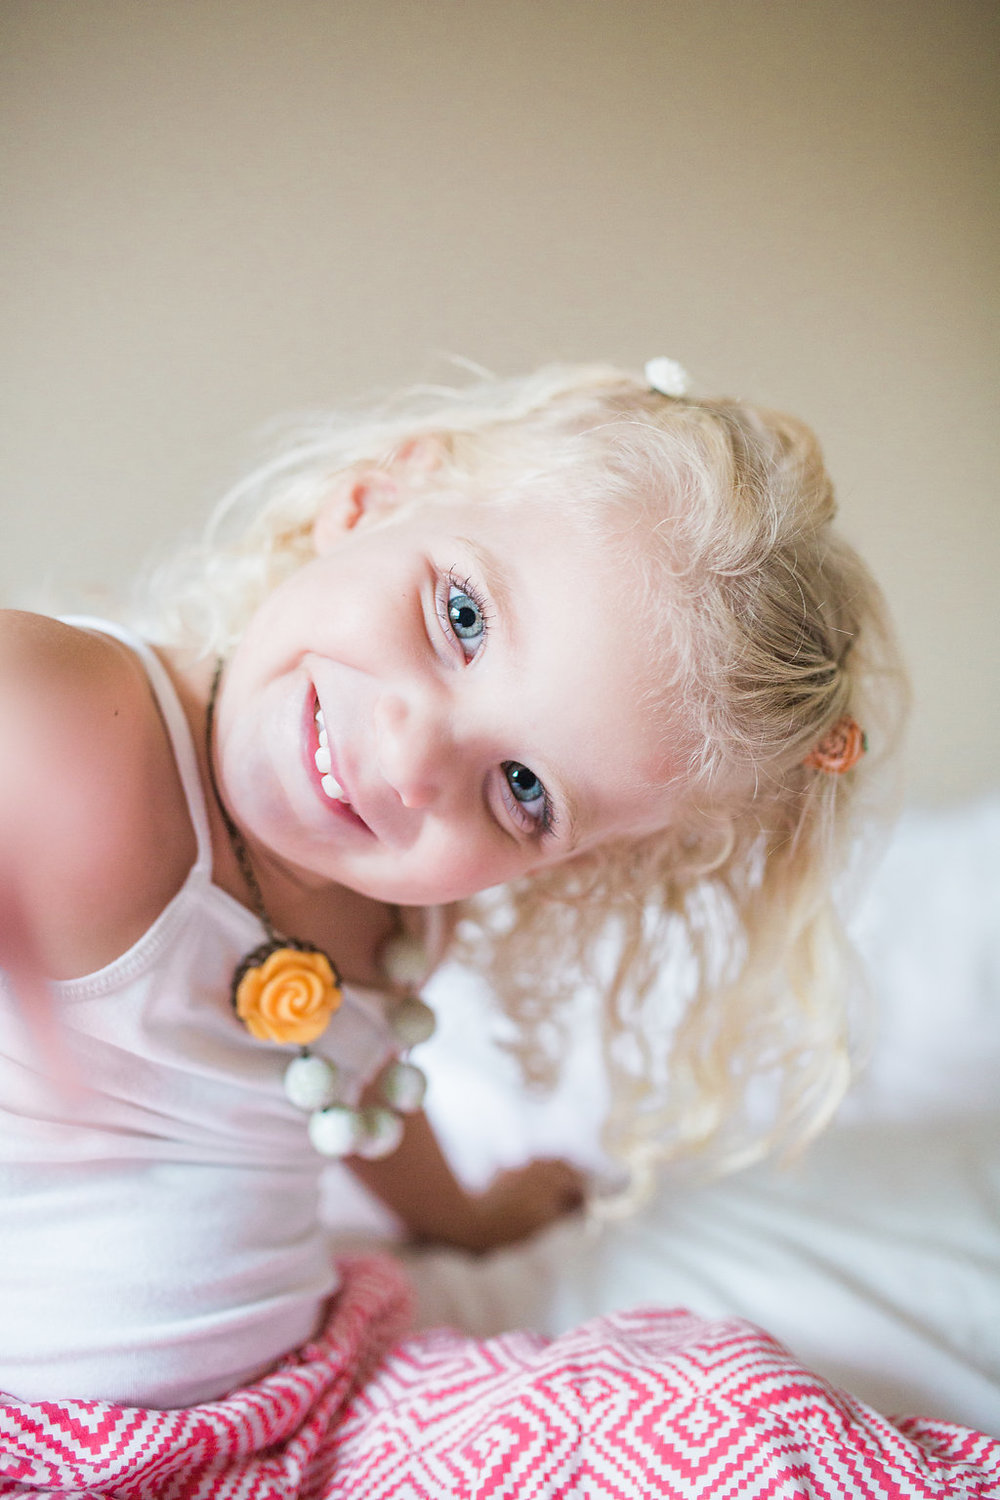 Emma Rose Company   Lifestyle Photographer   Seattle Wedding Photographer   Adorably Toddler on bed   In Home Lifestyle Session   Family Photography   Family photo shoot   Adorable Toddler Blonde Curls   Mastin Labs